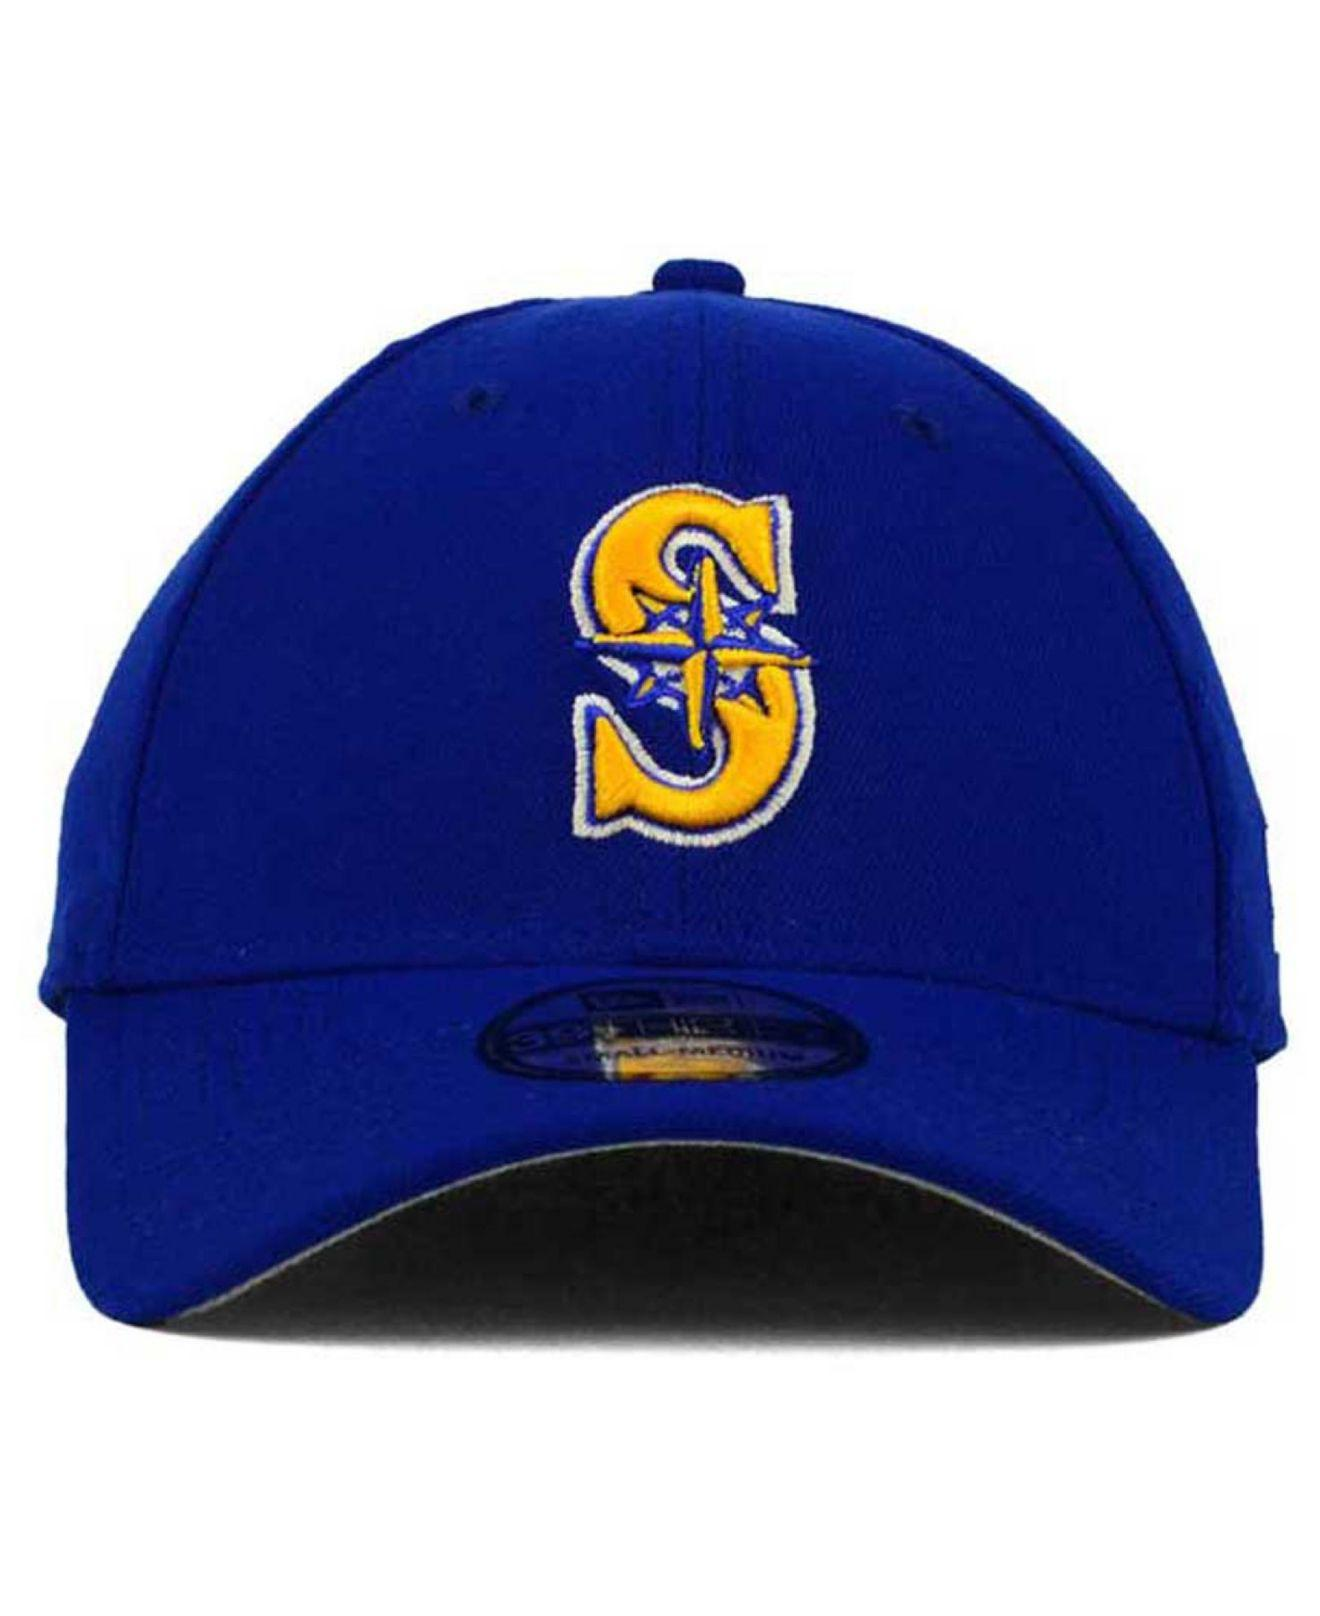 on sale 2d725 08993 ... official lyst 47 brand seattle mariners core classic 39thirty cap in  blue for men 552ae f01b3